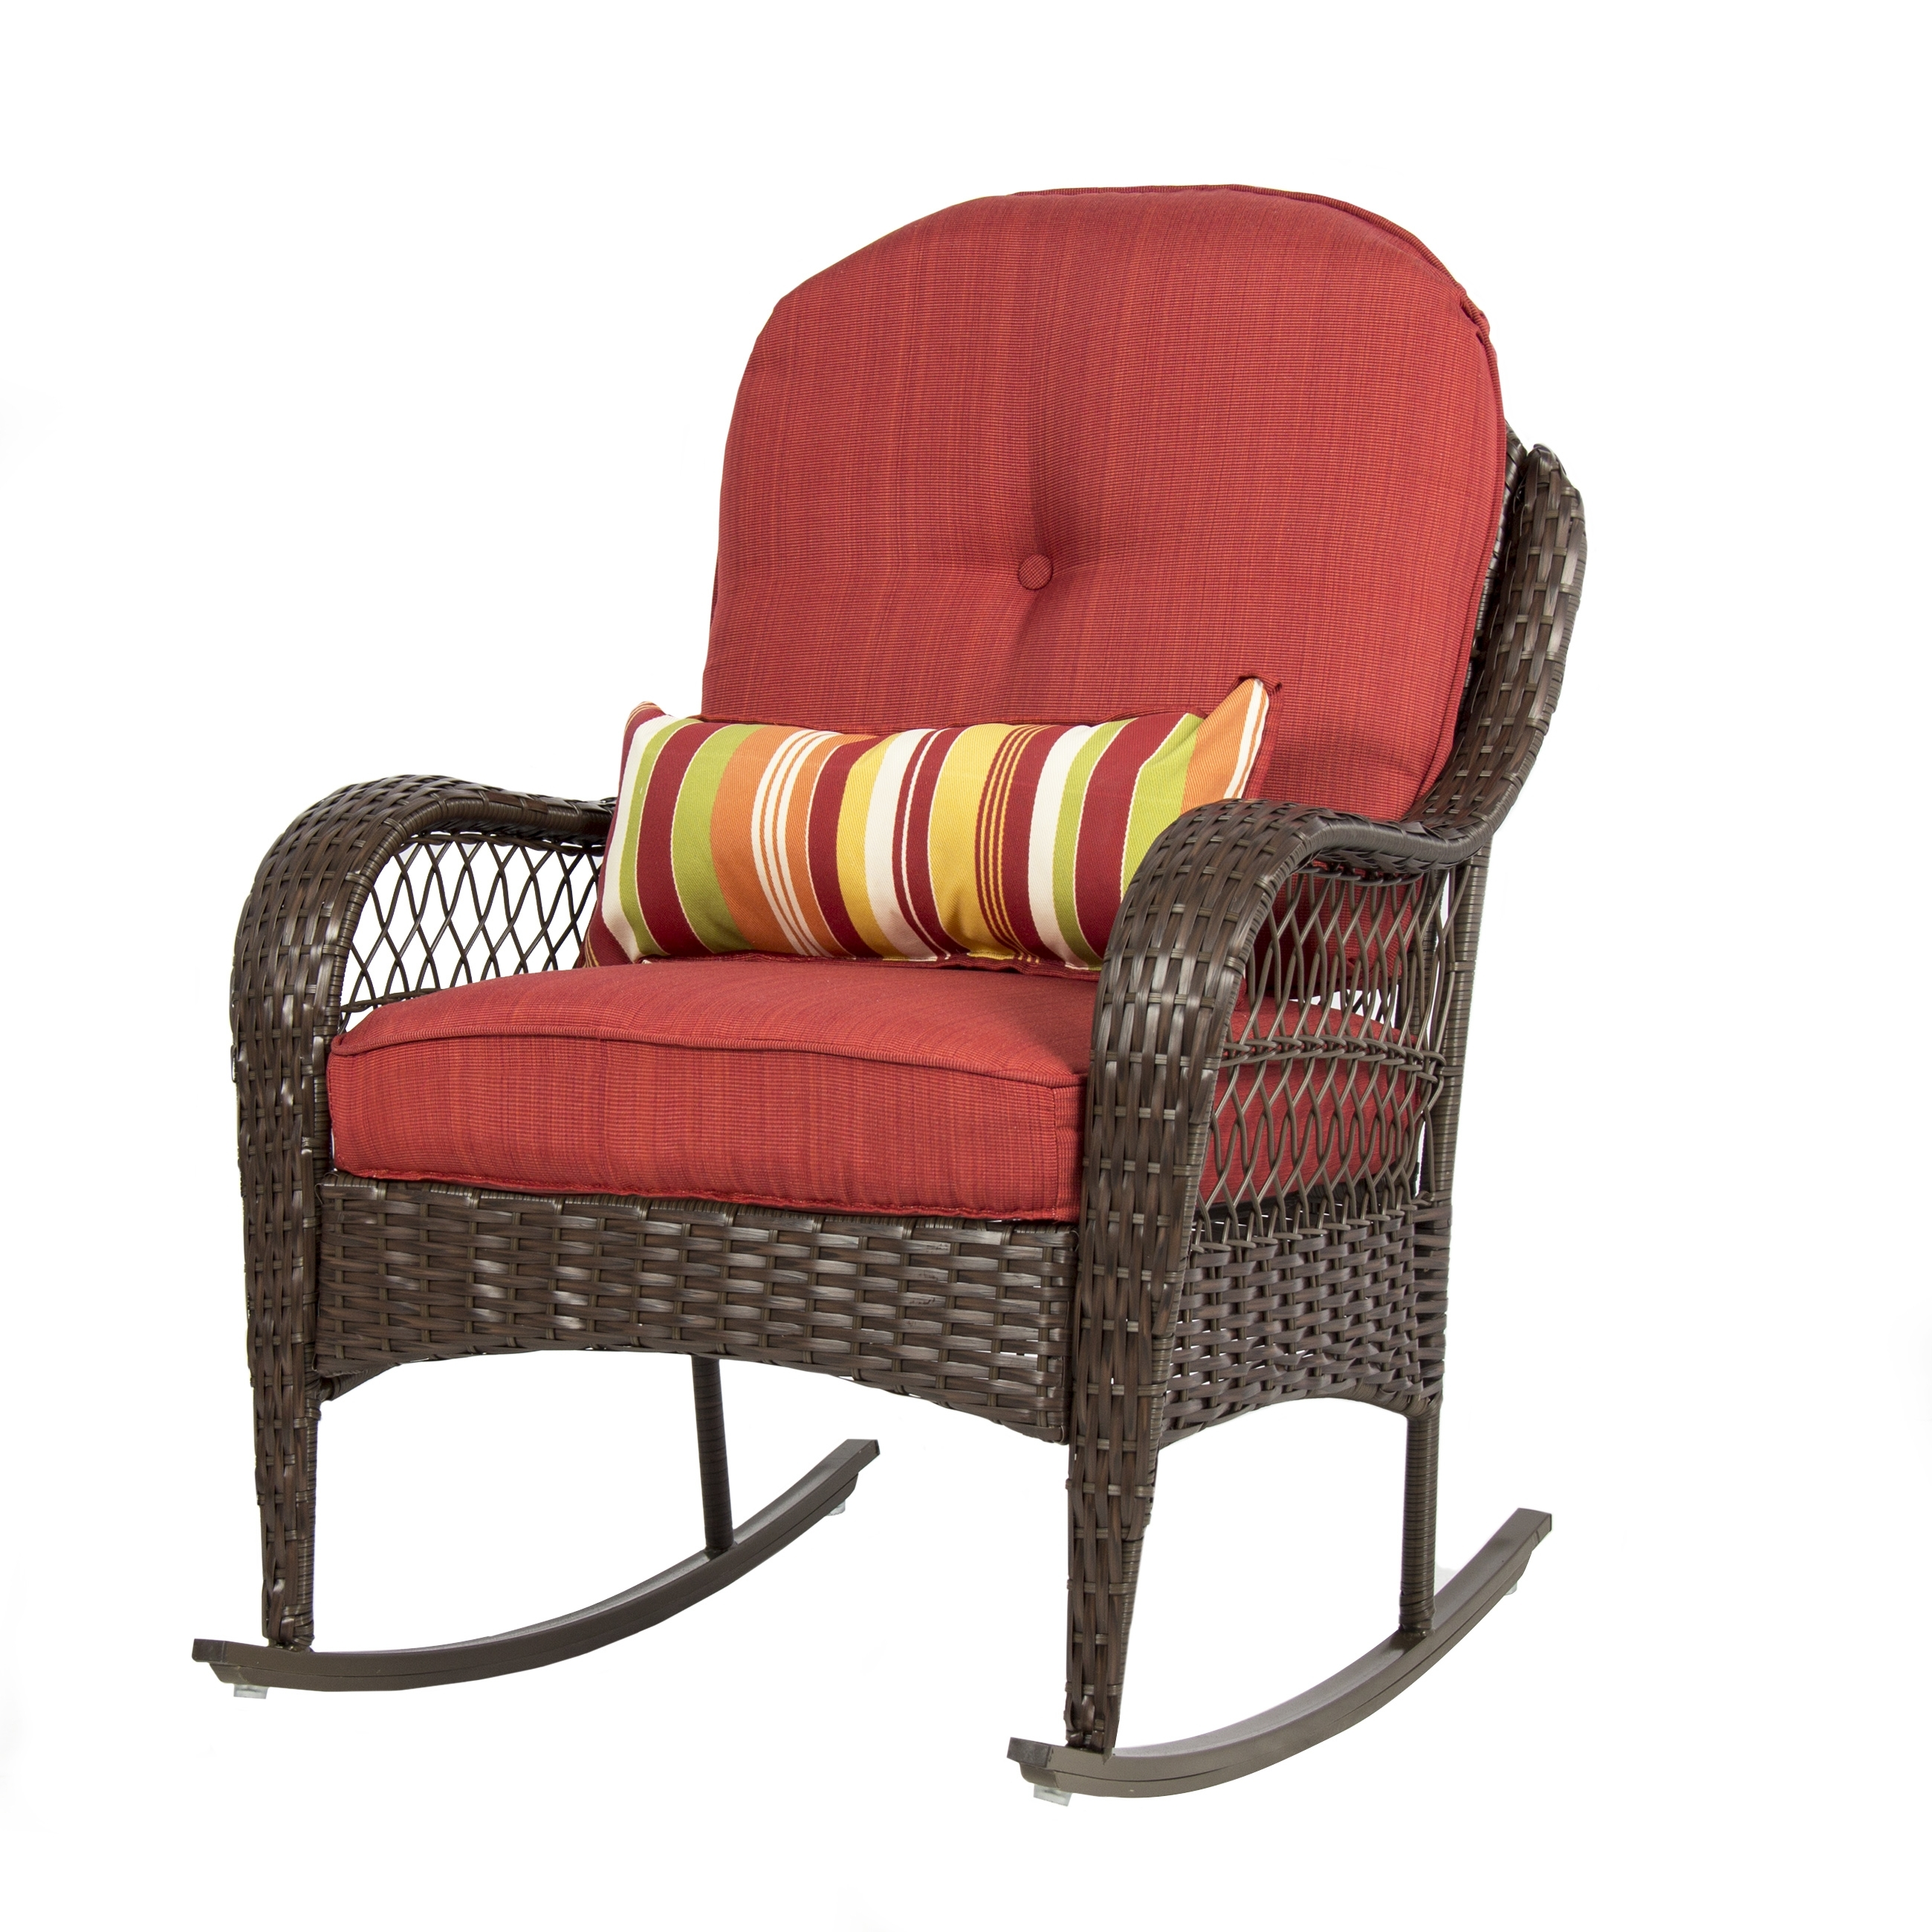 Rocking Chairs At Walmart Regarding Newest Best Choice Products Wicker Rocking Chair Patio Porch Deck Furniture (View 11 of 15)